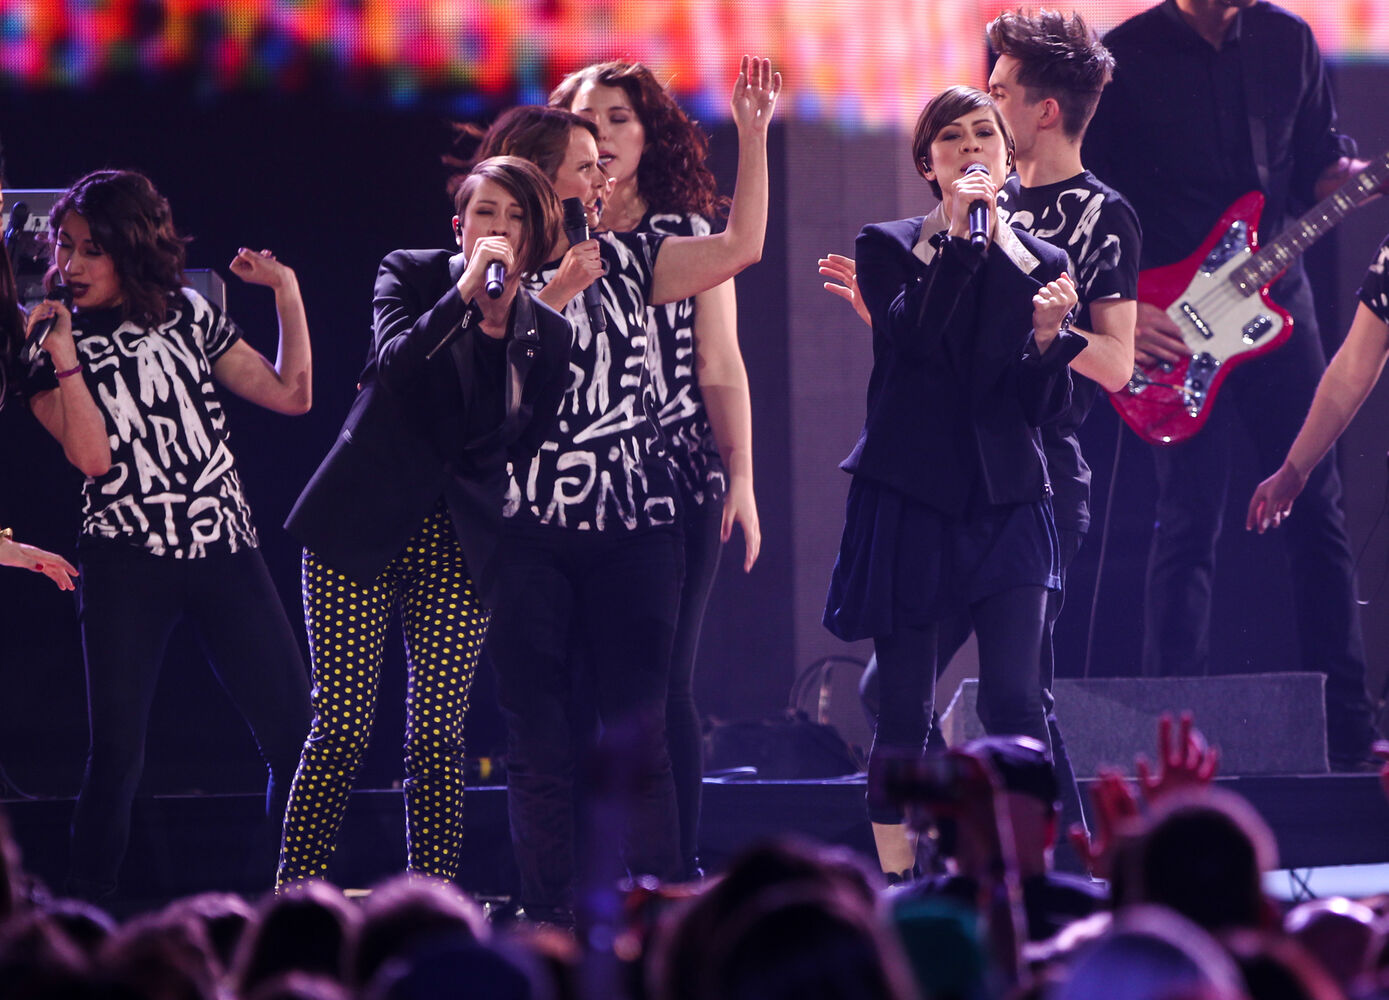 Tegan and Sara perform at the 2014 Juno Awards. (Joe Bryksa/ Winnipeg Free Press) (Joe Bryksa / Winnipeg Free Press)